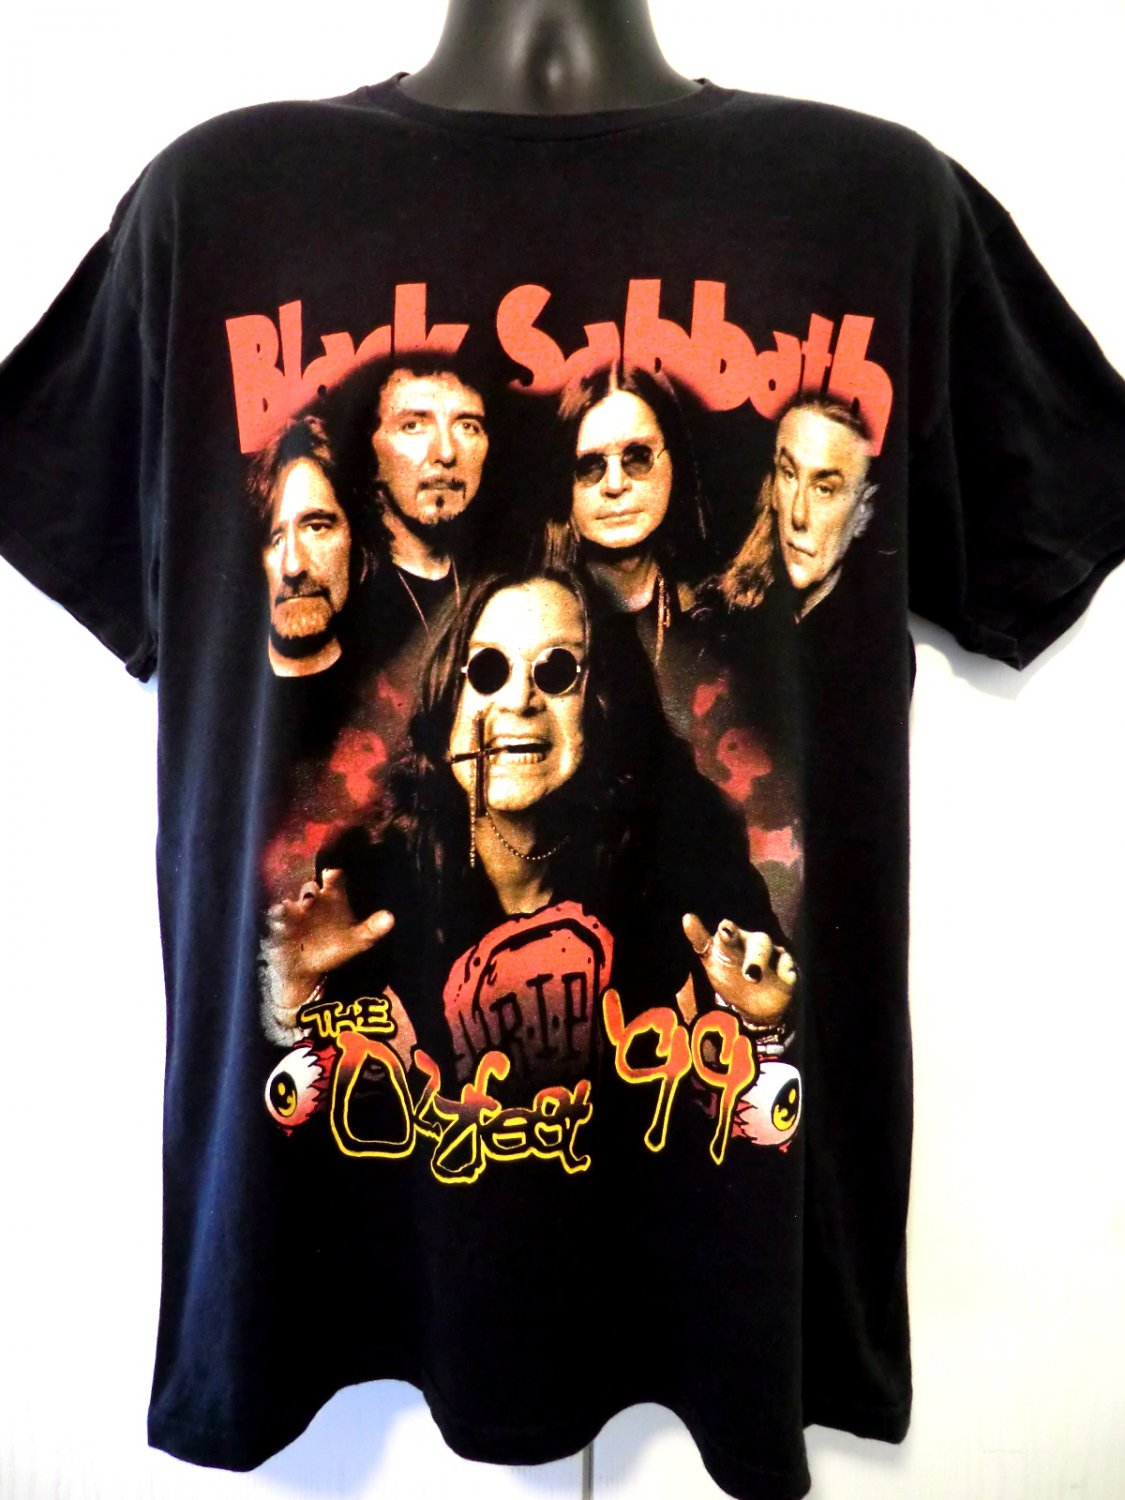 SOLD! Ozzfest 1999 T-Shirt Size Large Black Sabbath